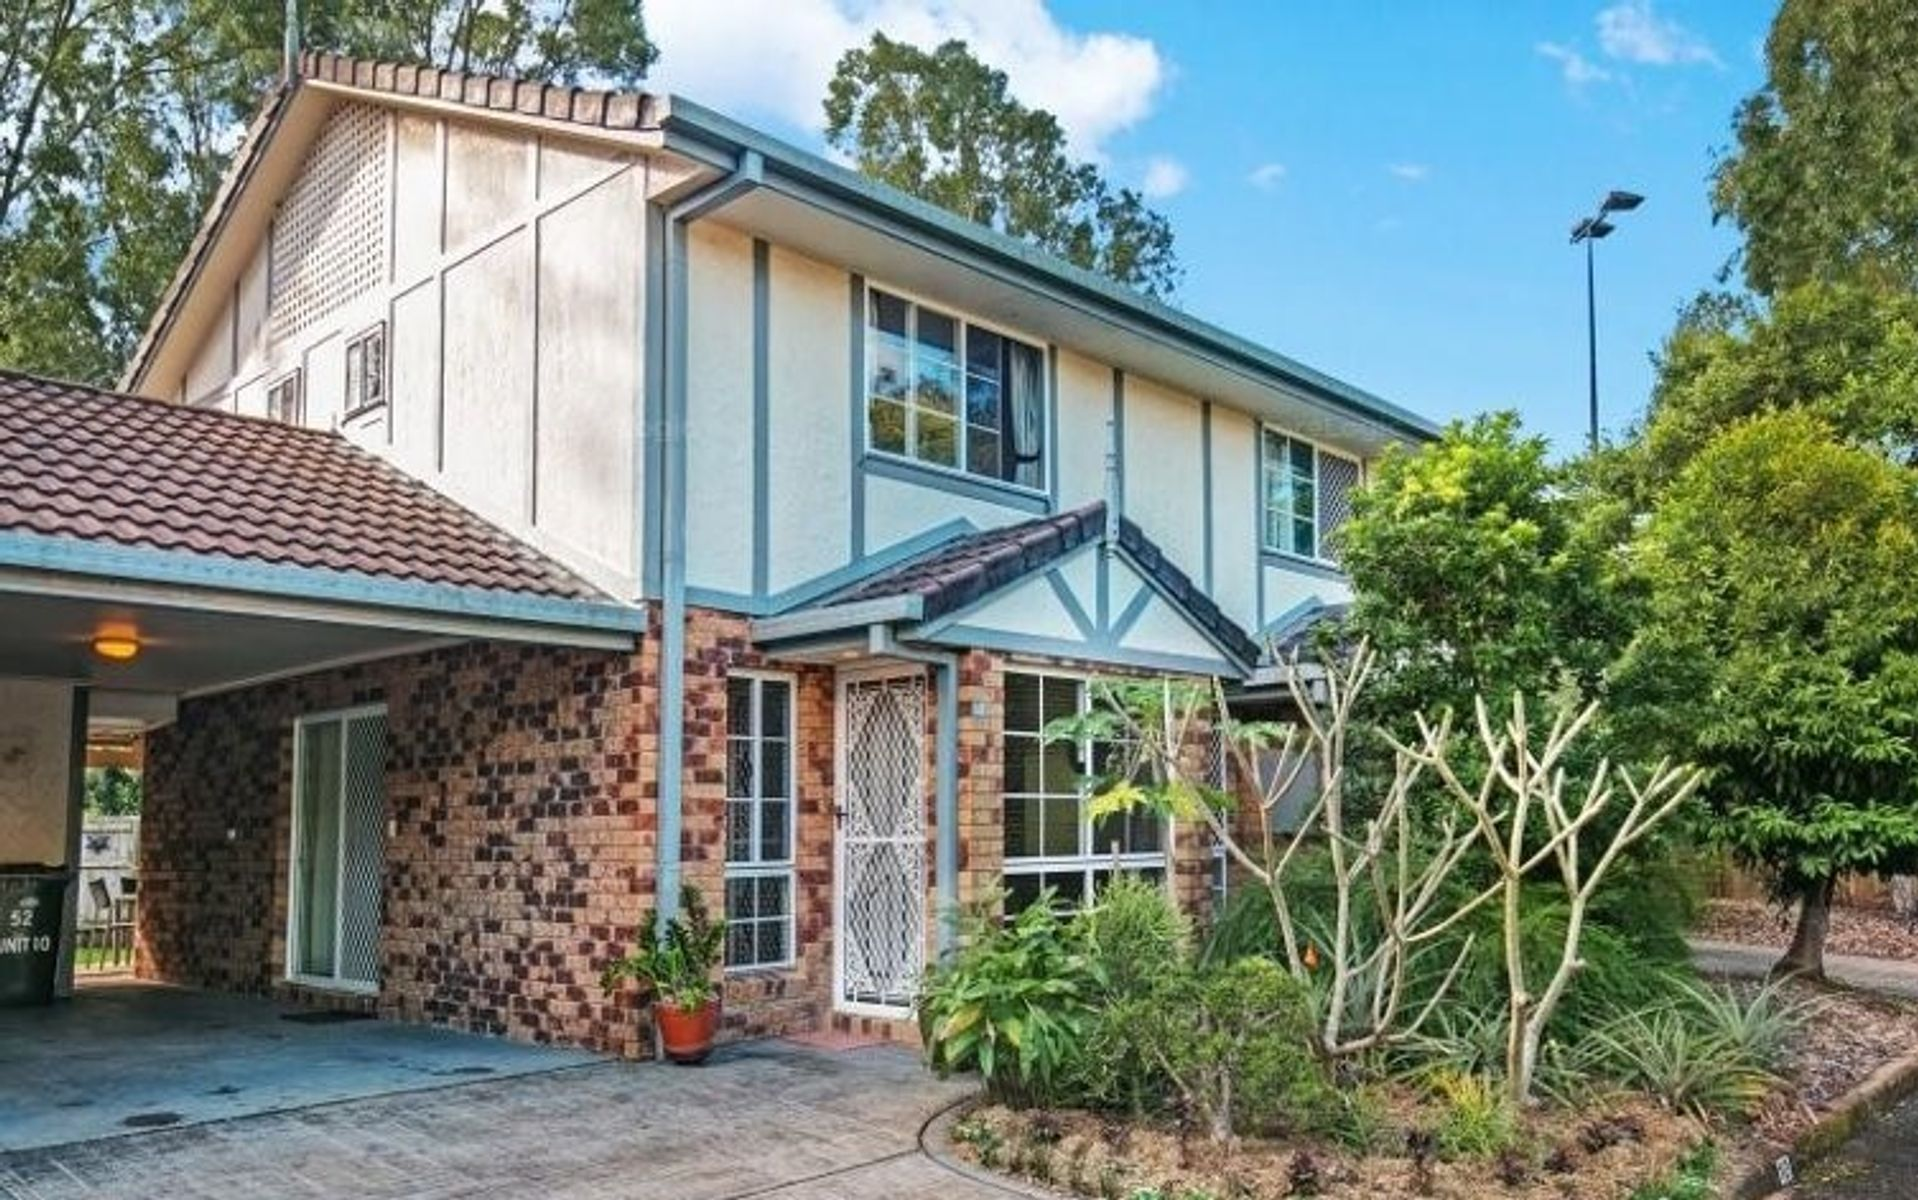 10/52 Frank Street, Thorneside, QLD 4158